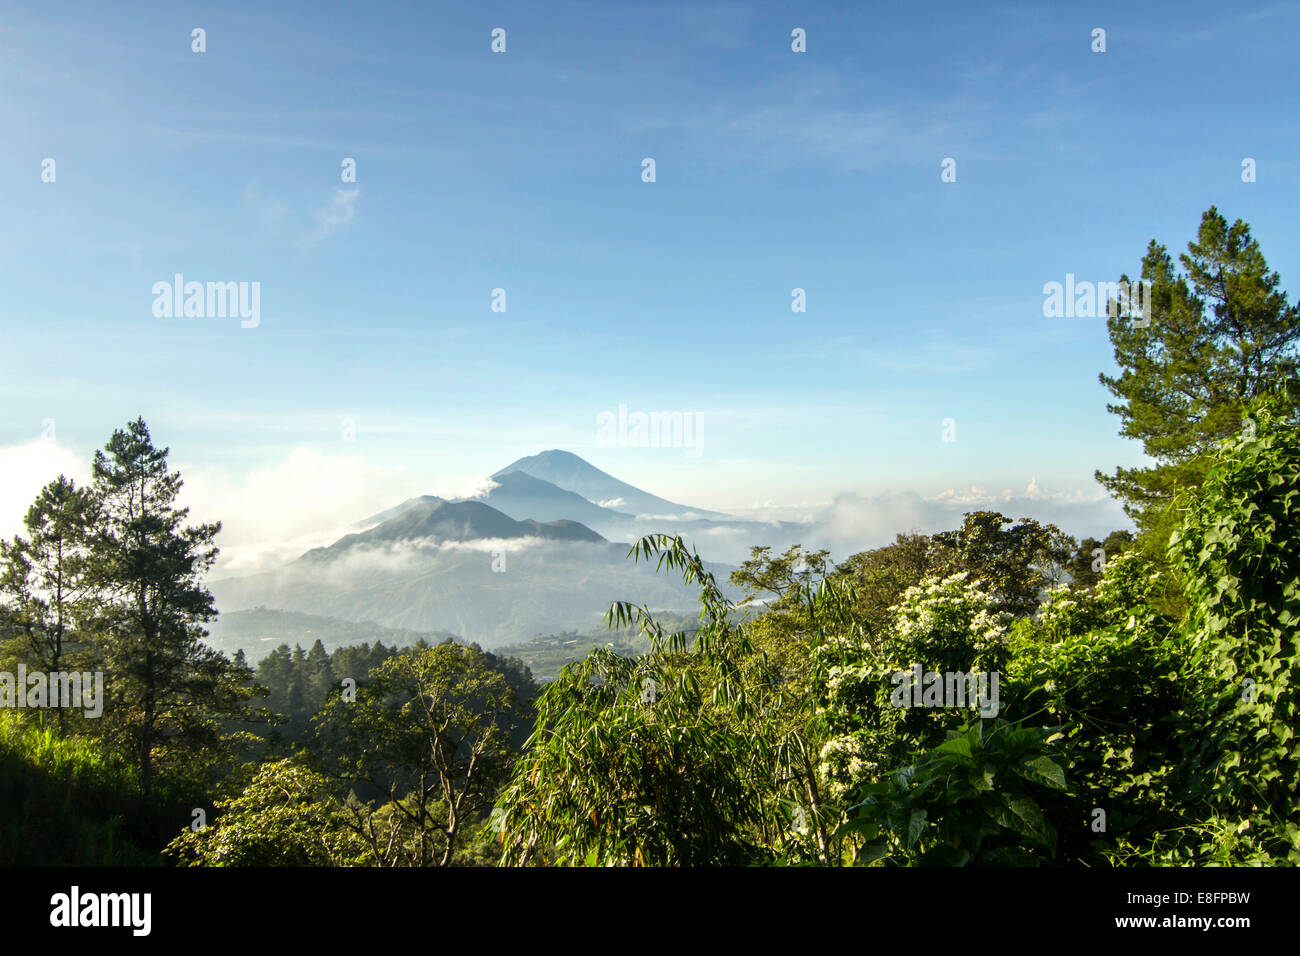 Indonesia, Bali, View of Mt Agung and Mt Batur - Stock Image